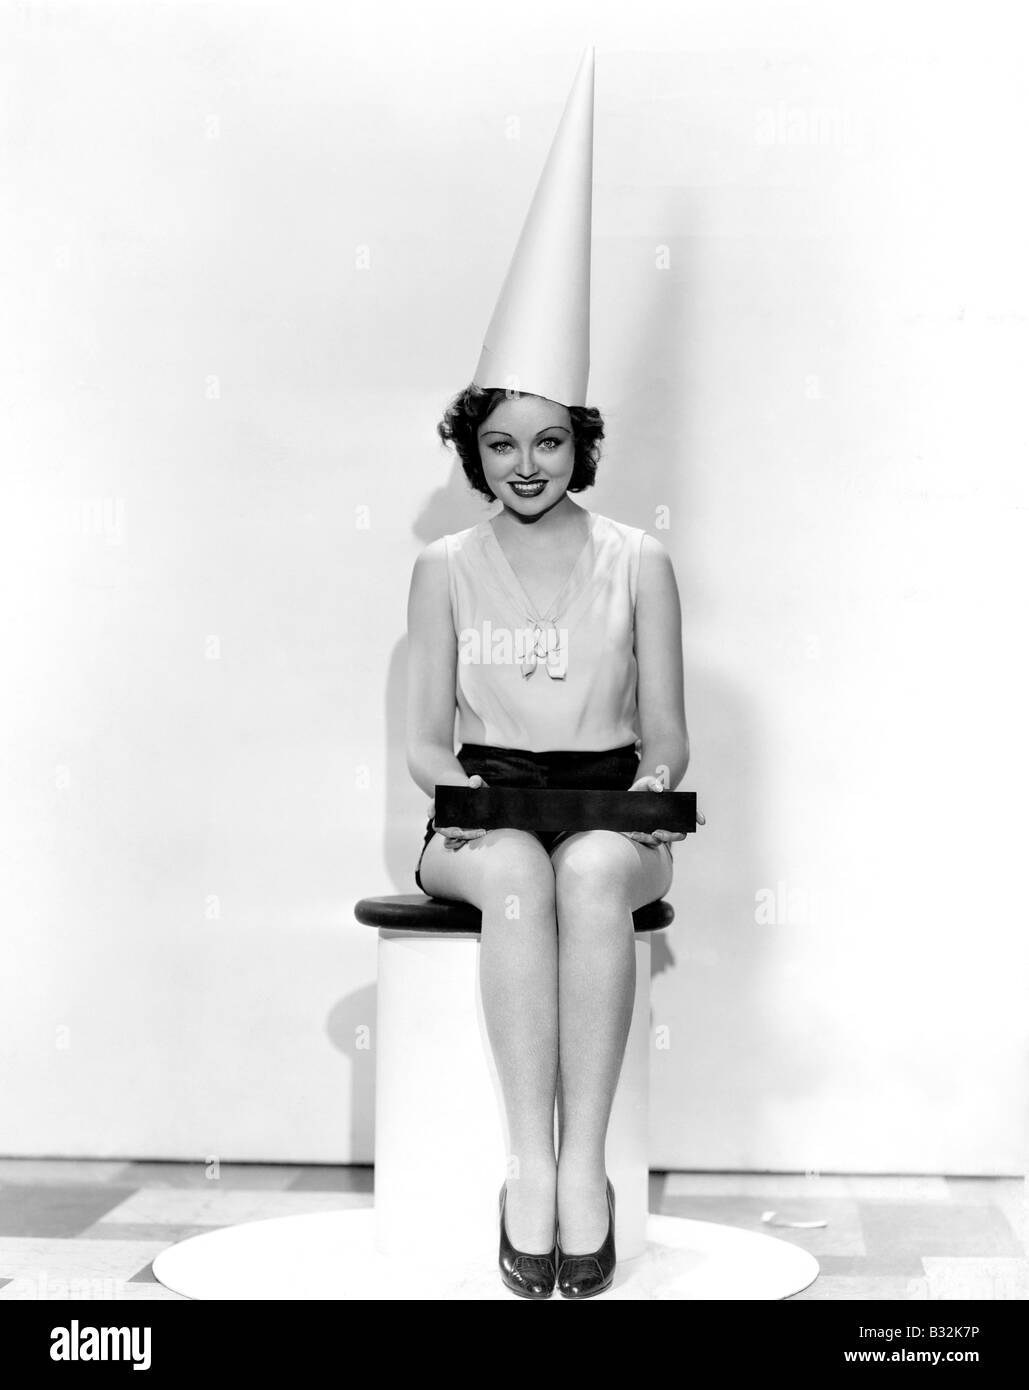 Portrait of woman with April Fool sign wearing dunce cap - Stock Image